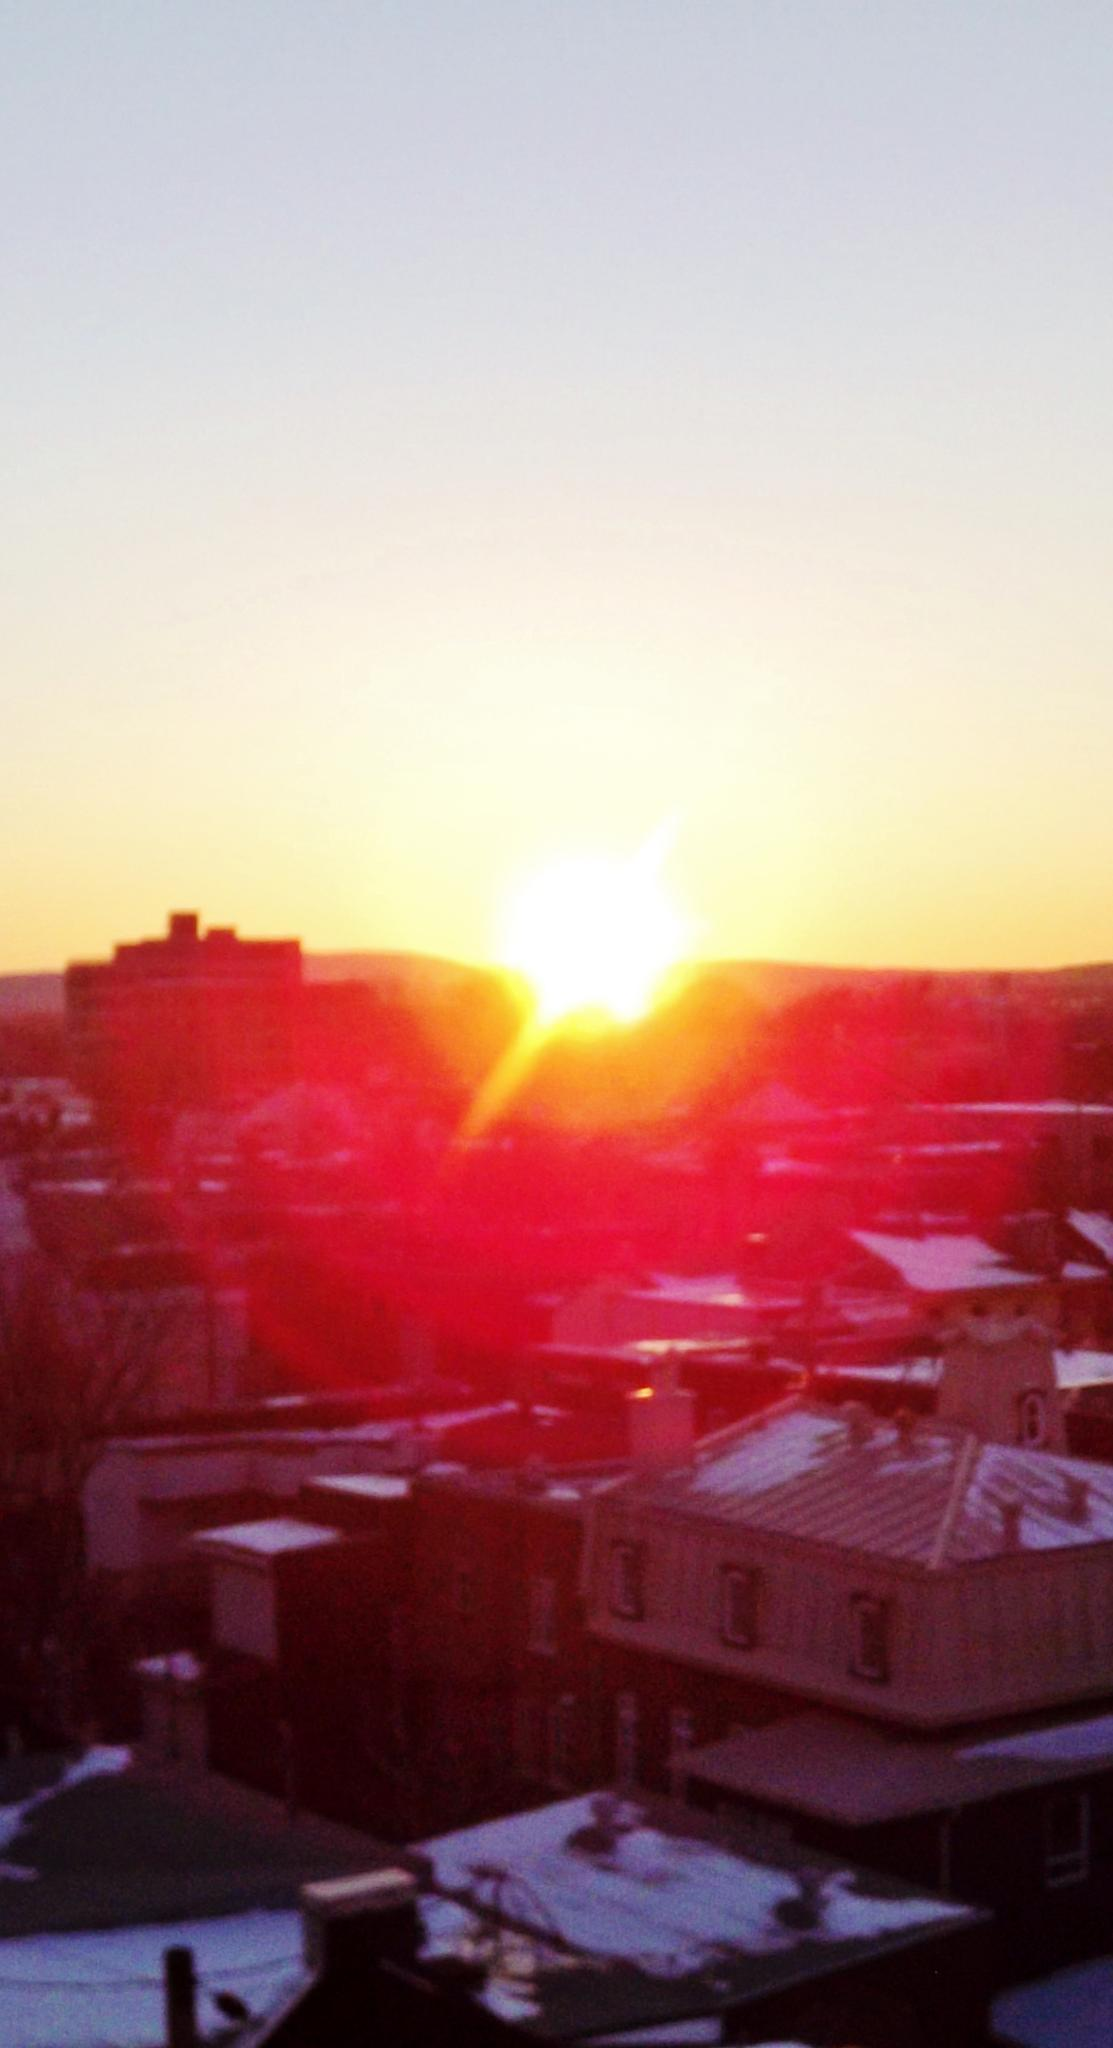 Yellow-red sunset on Quebec city by real.michaud.5036